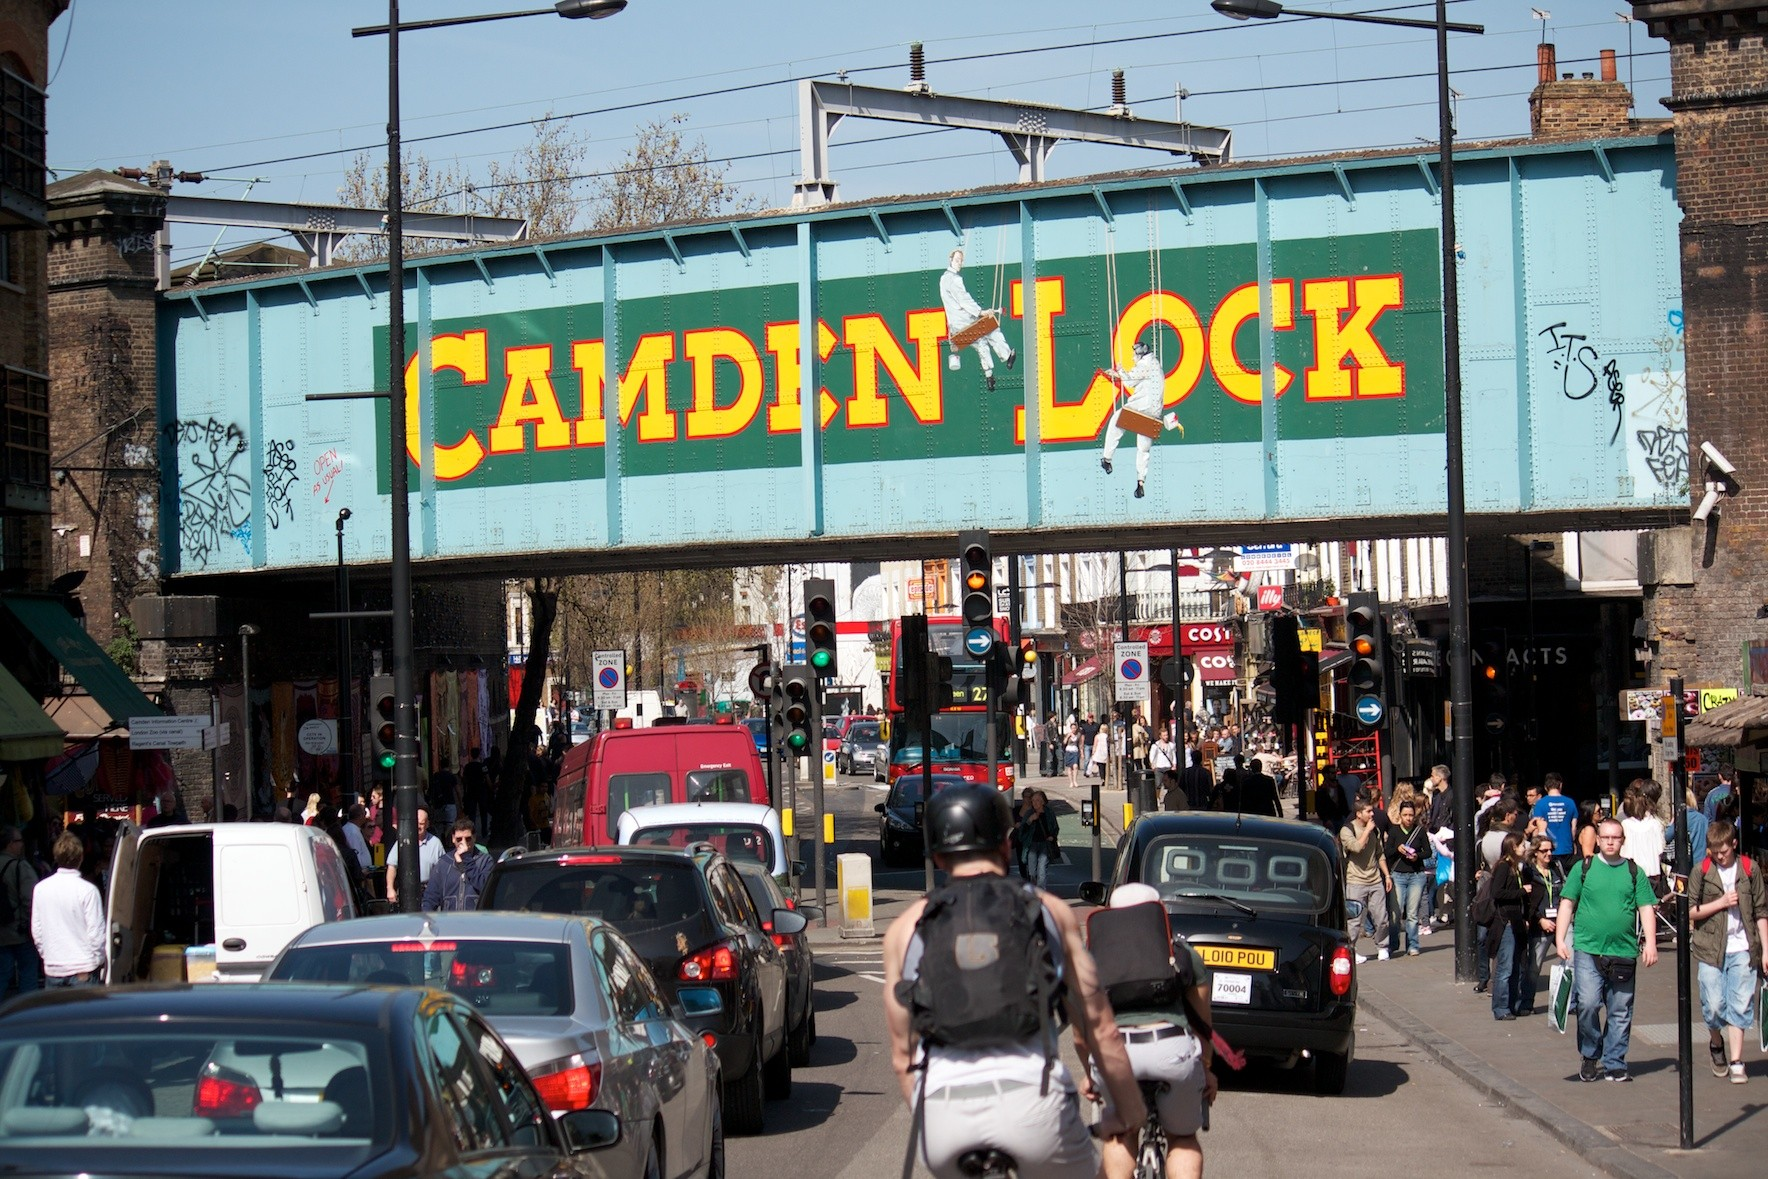 Camden Lock Bridge